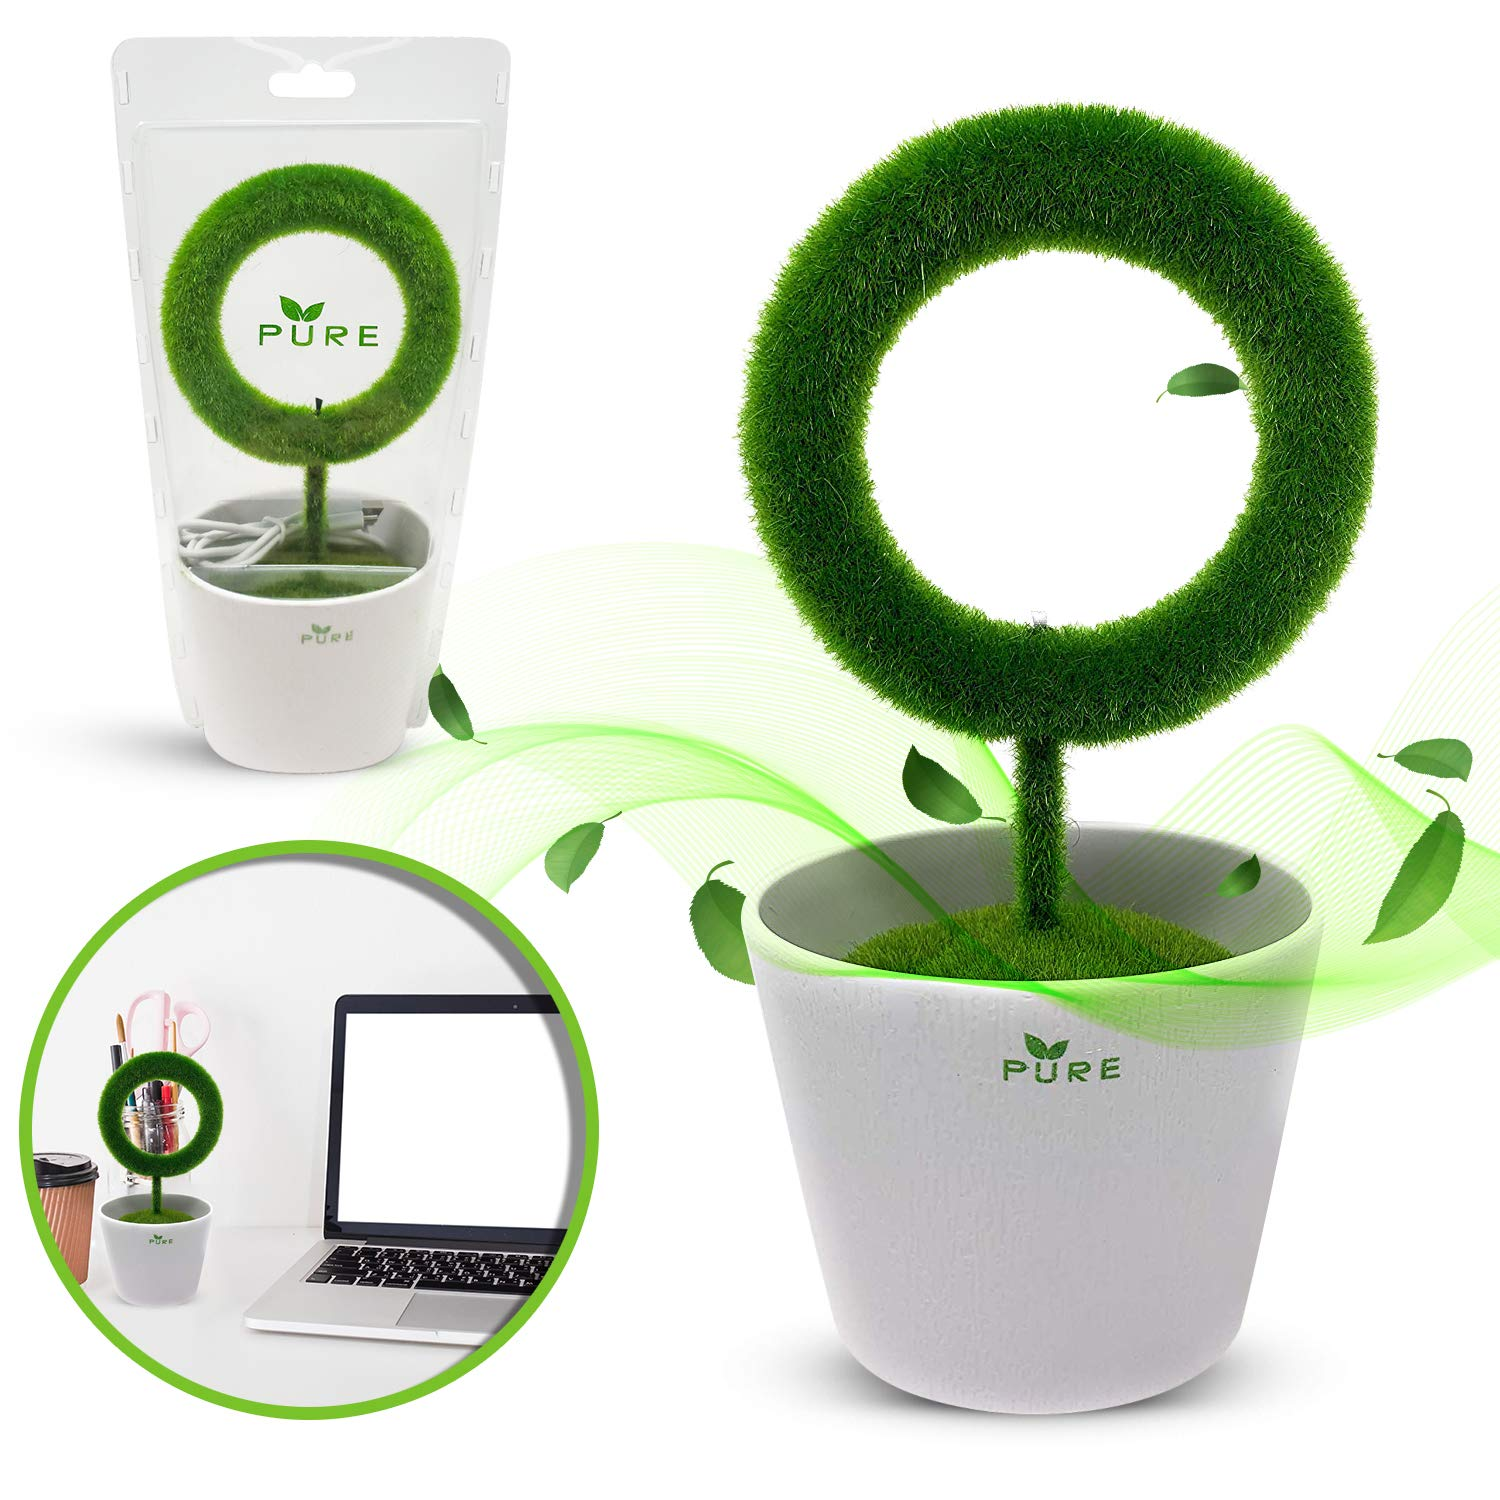 Plant Air Purifier for Desktop Removes Airborne Particles Smoke Air Pollutant Allergen Dust Pollen PM2.5 for Asthma Allergies Smokers Pets Air Cleaner Ionizer Releasing Negative Ions for Home Office by PURE